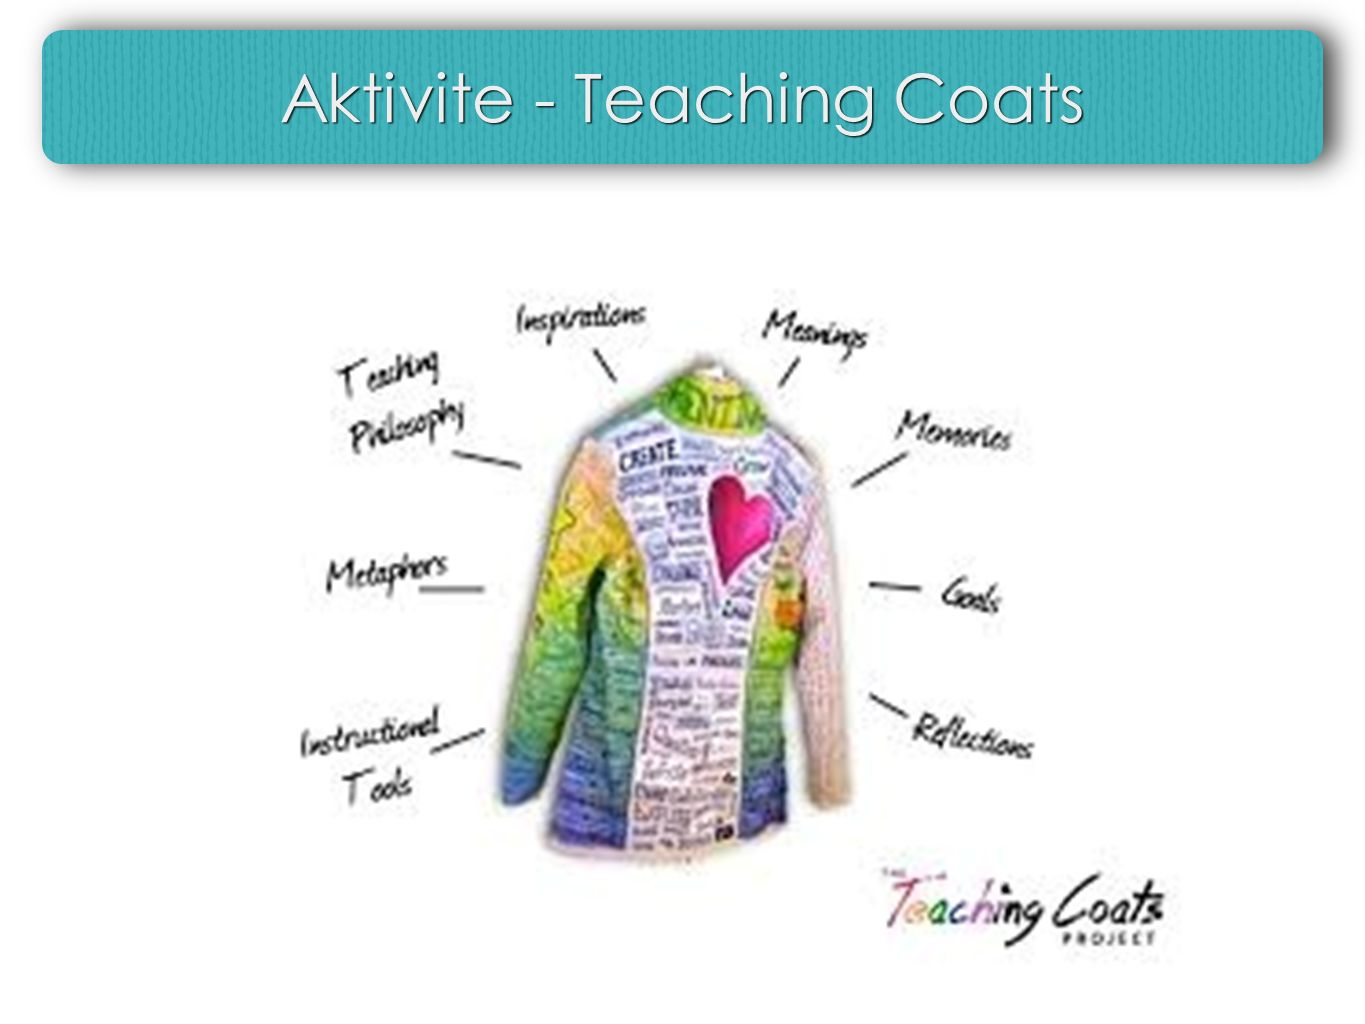 Aktivite - Teaching Coats